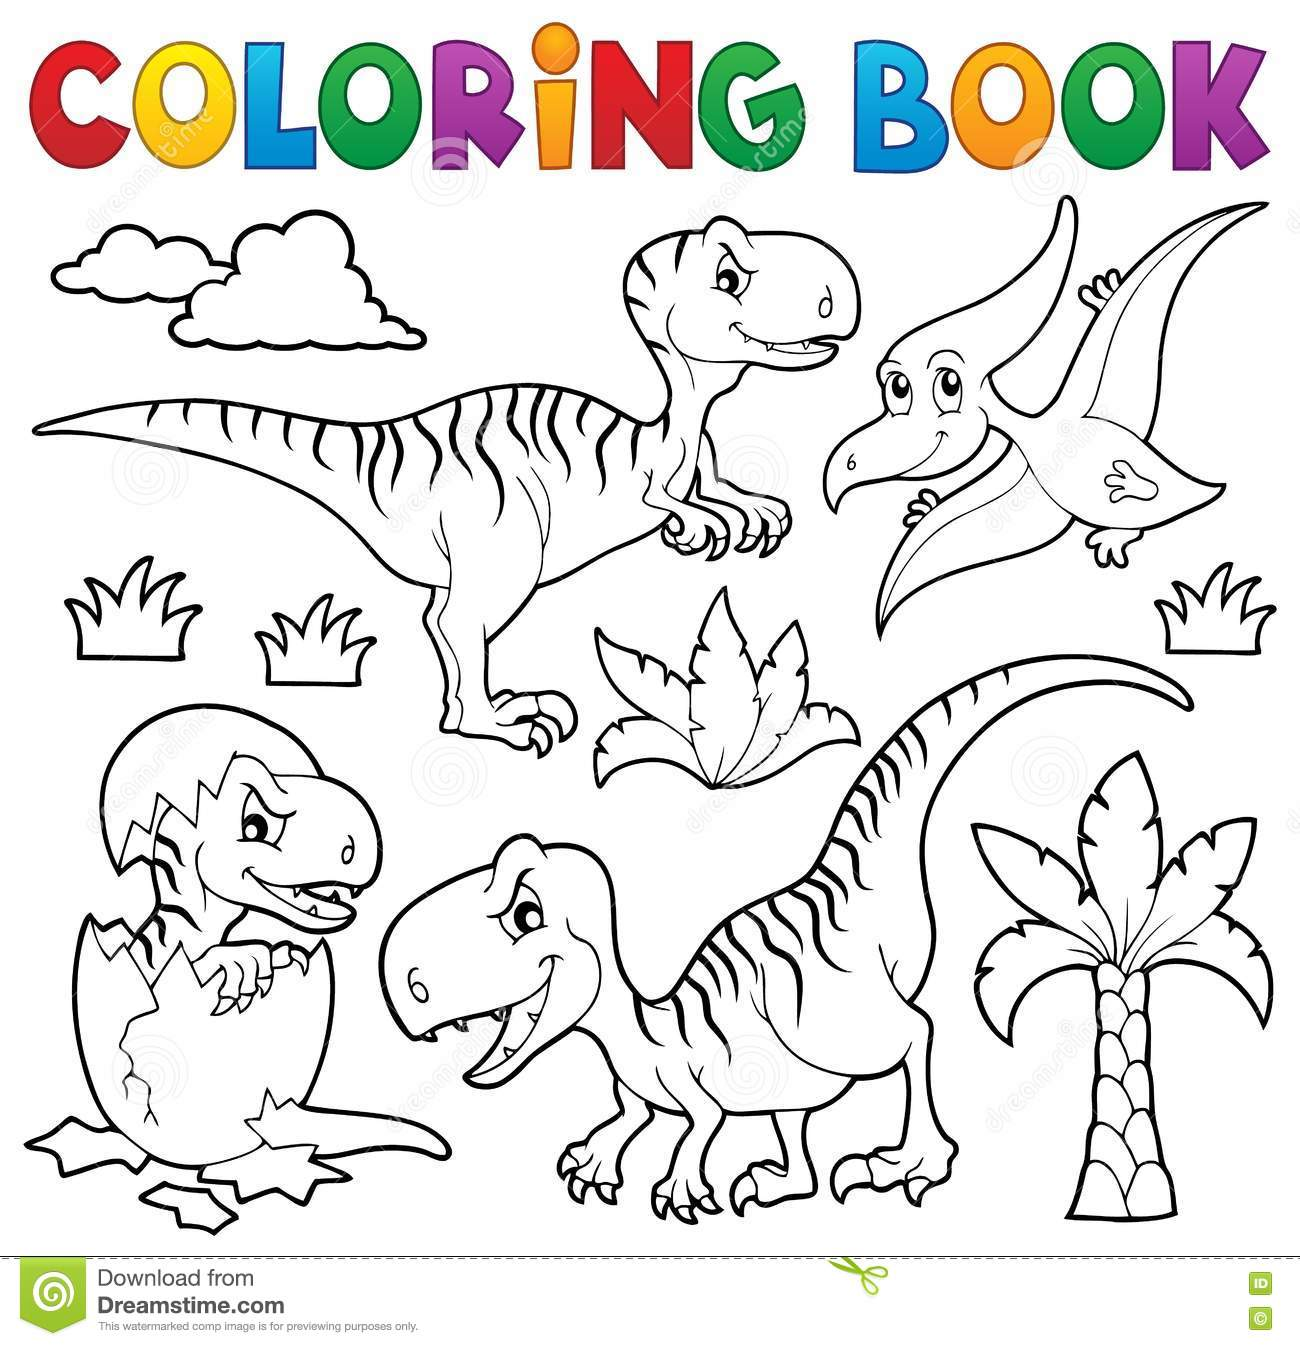 Royalty Free Vector Download Coloring Book Dinosaur